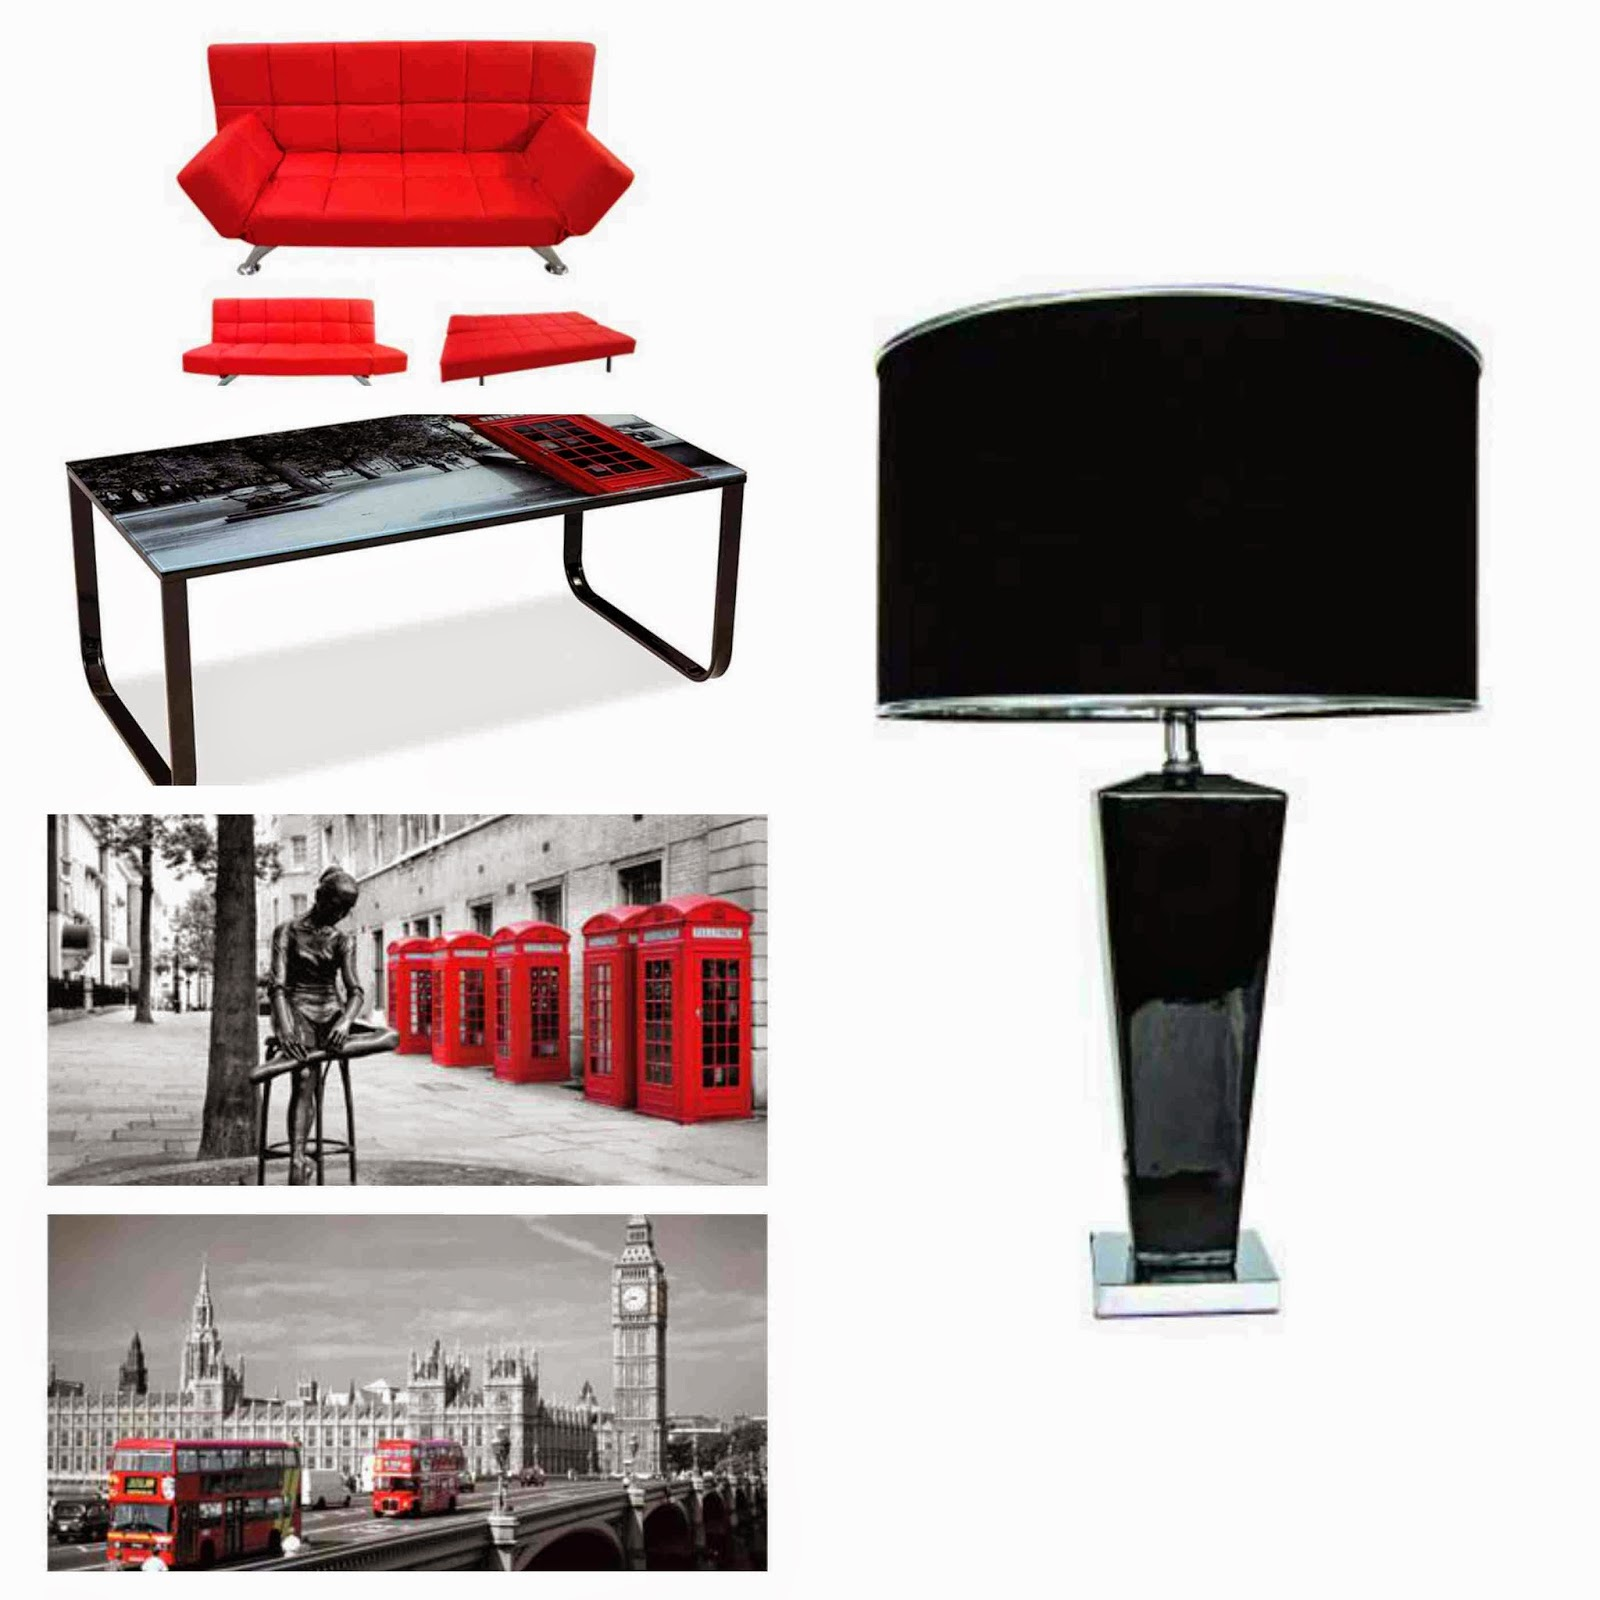 Coffee table metal legs glass top London wall art red sofa bed